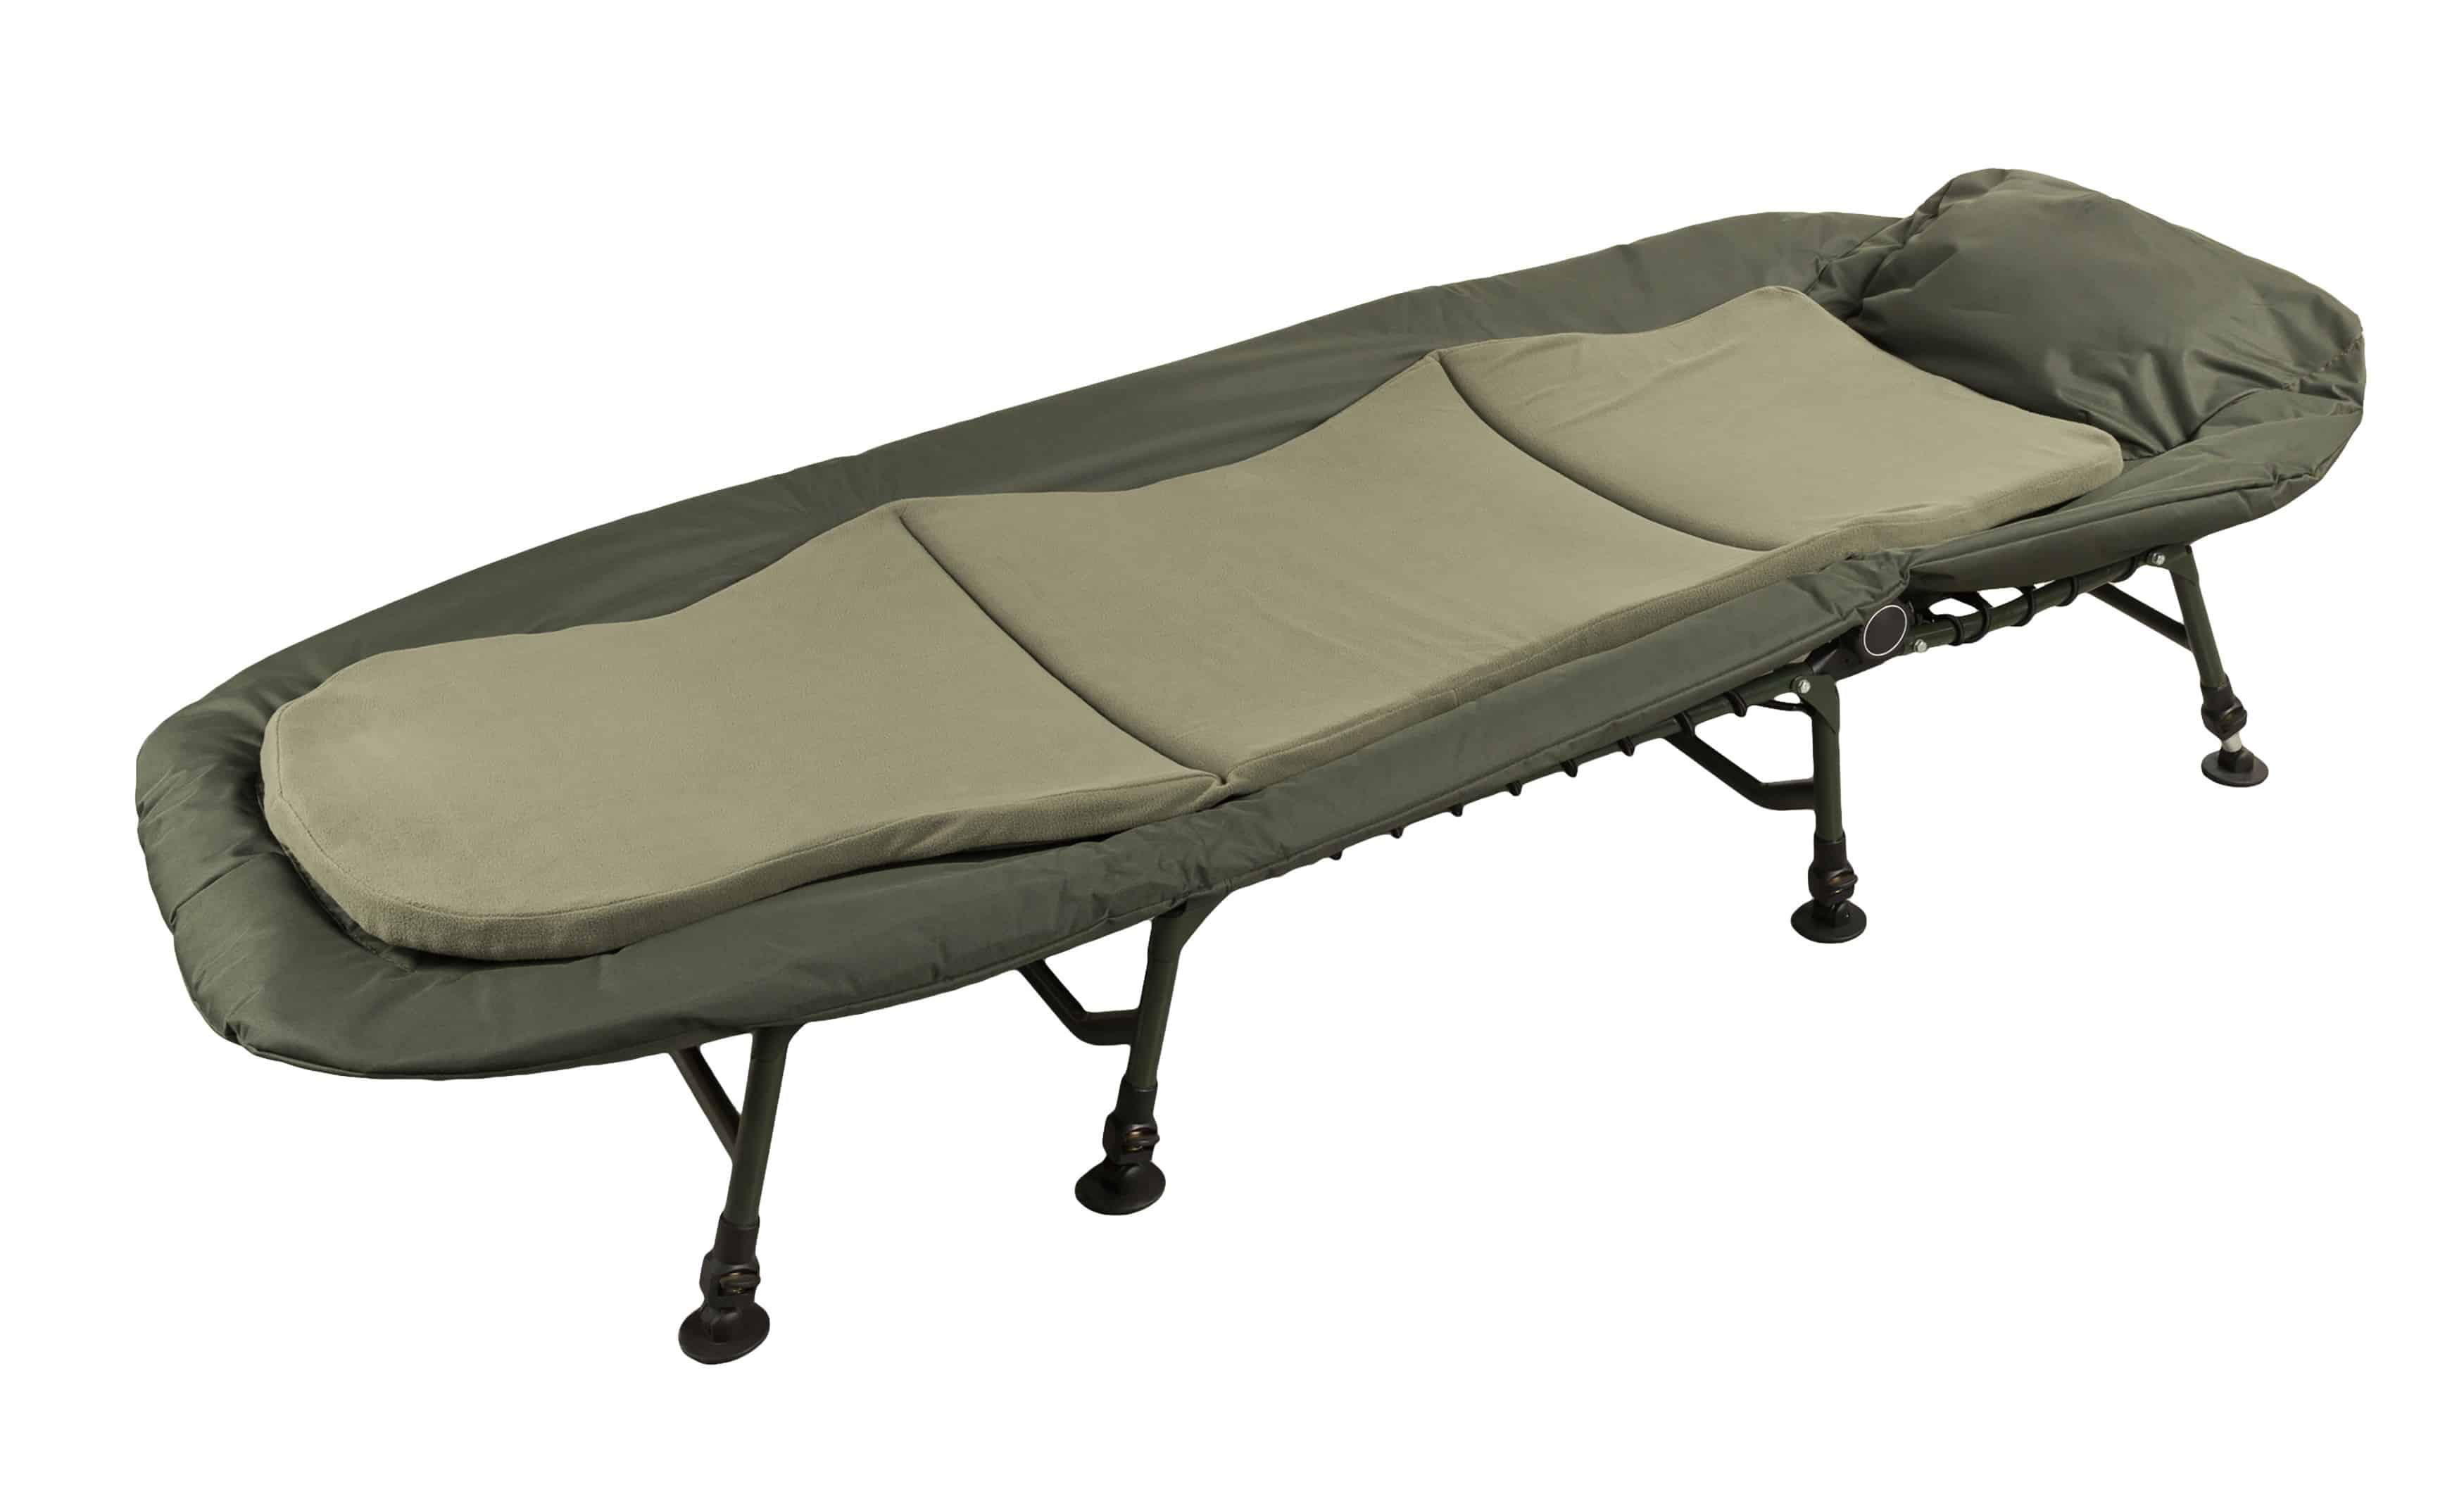 What Is The Best Camping Cot For The Money In 2019